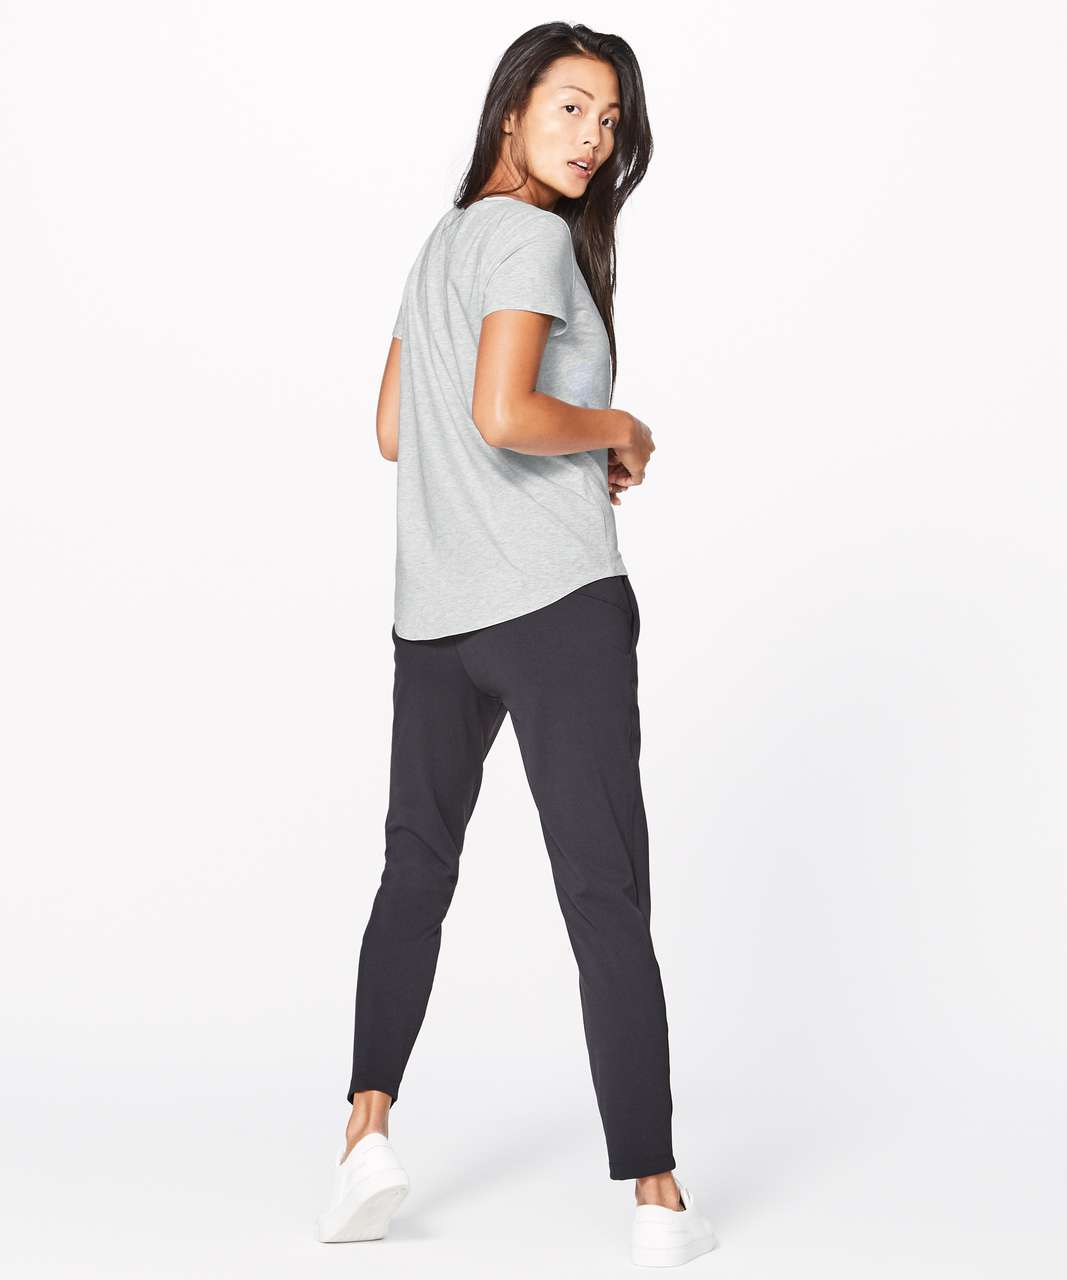 Lululemon Love Crew III - Heathered Vapor